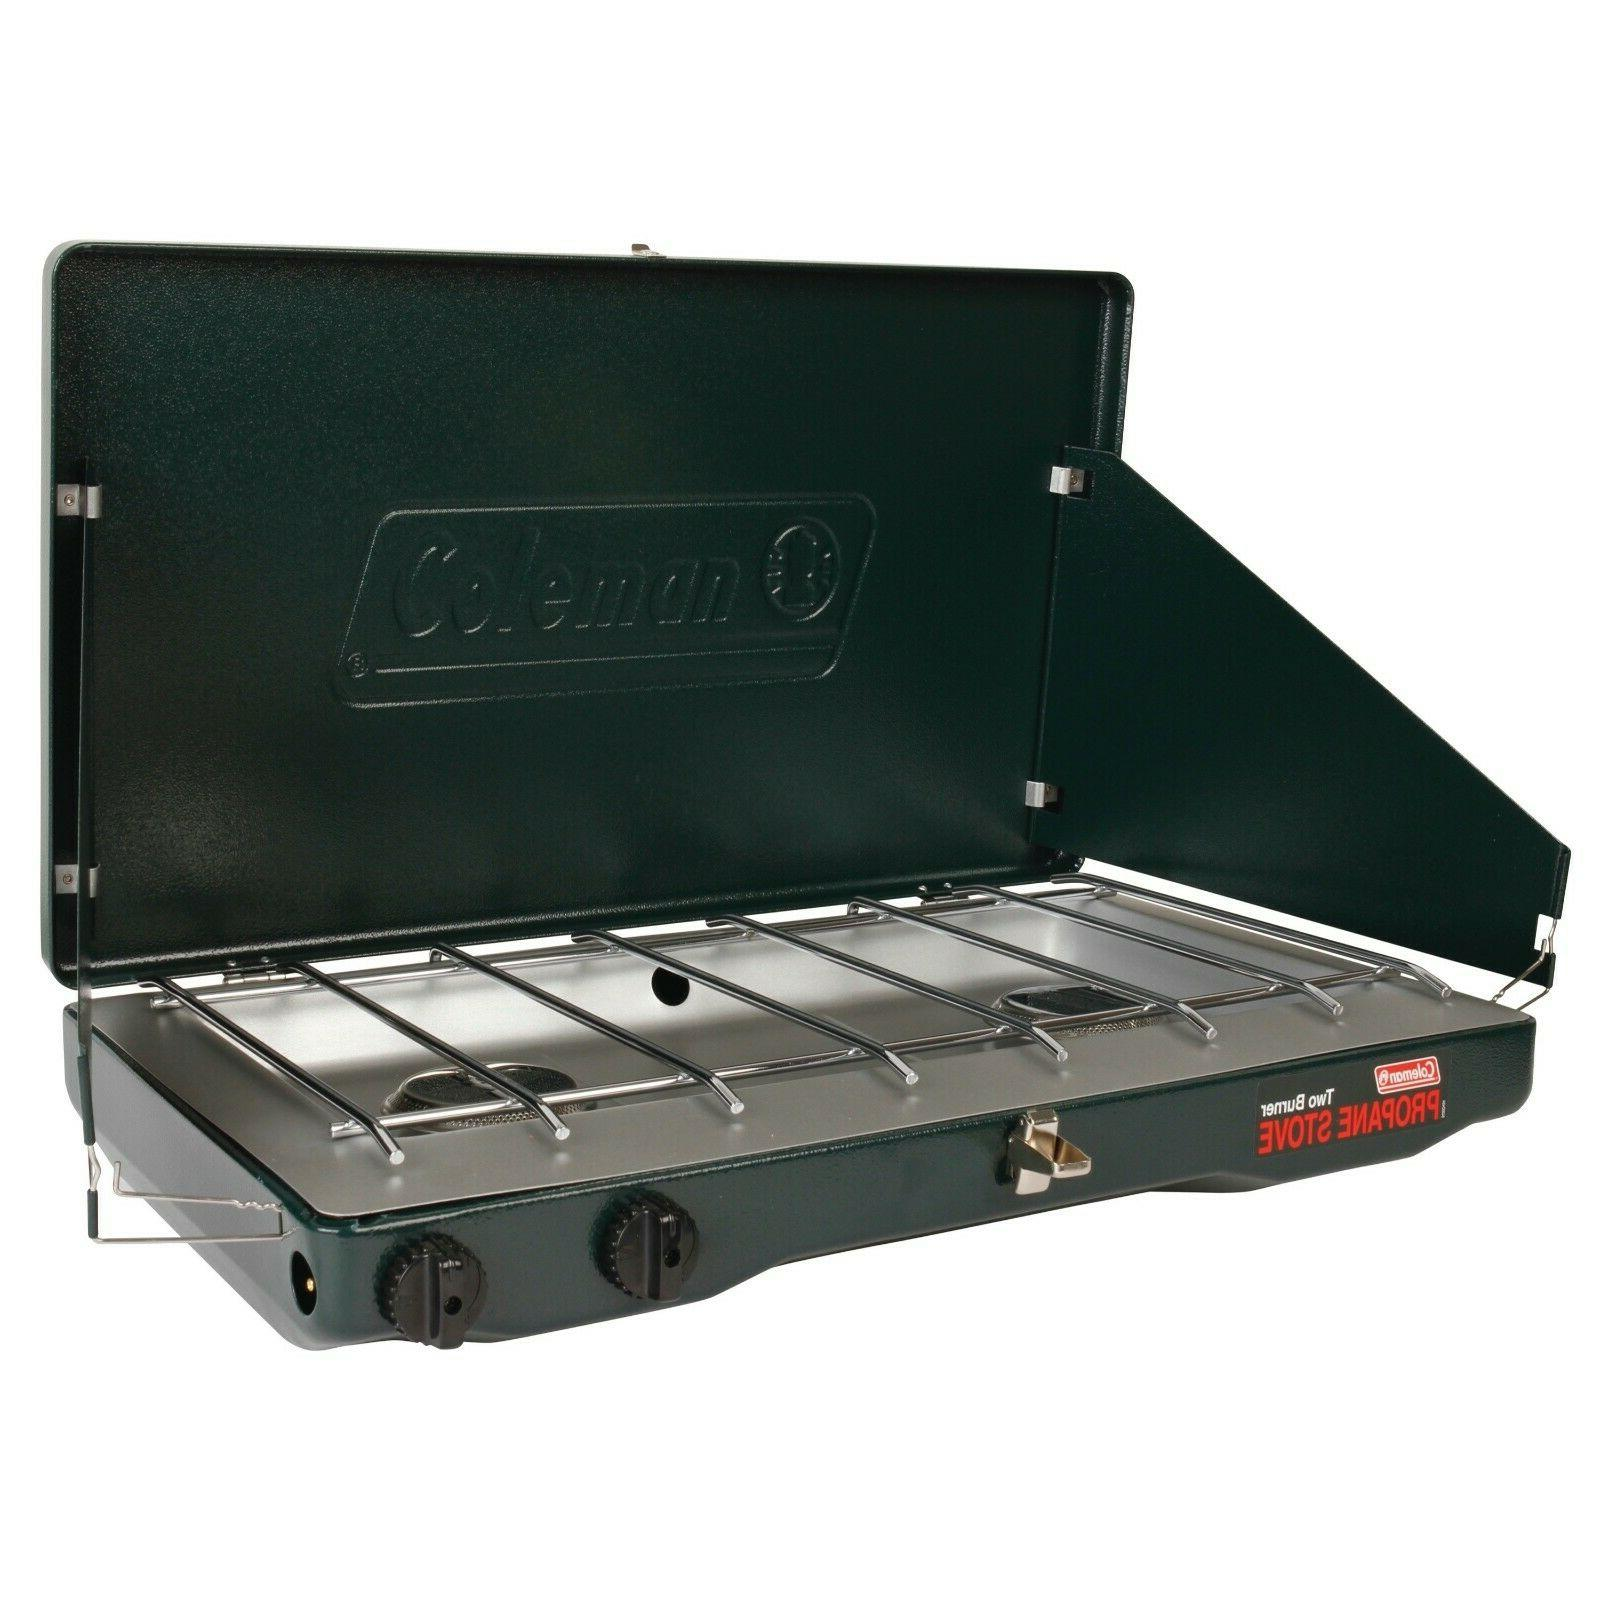 Coleman Gas Camping Stove Classic Propane with 2 Burner Wind